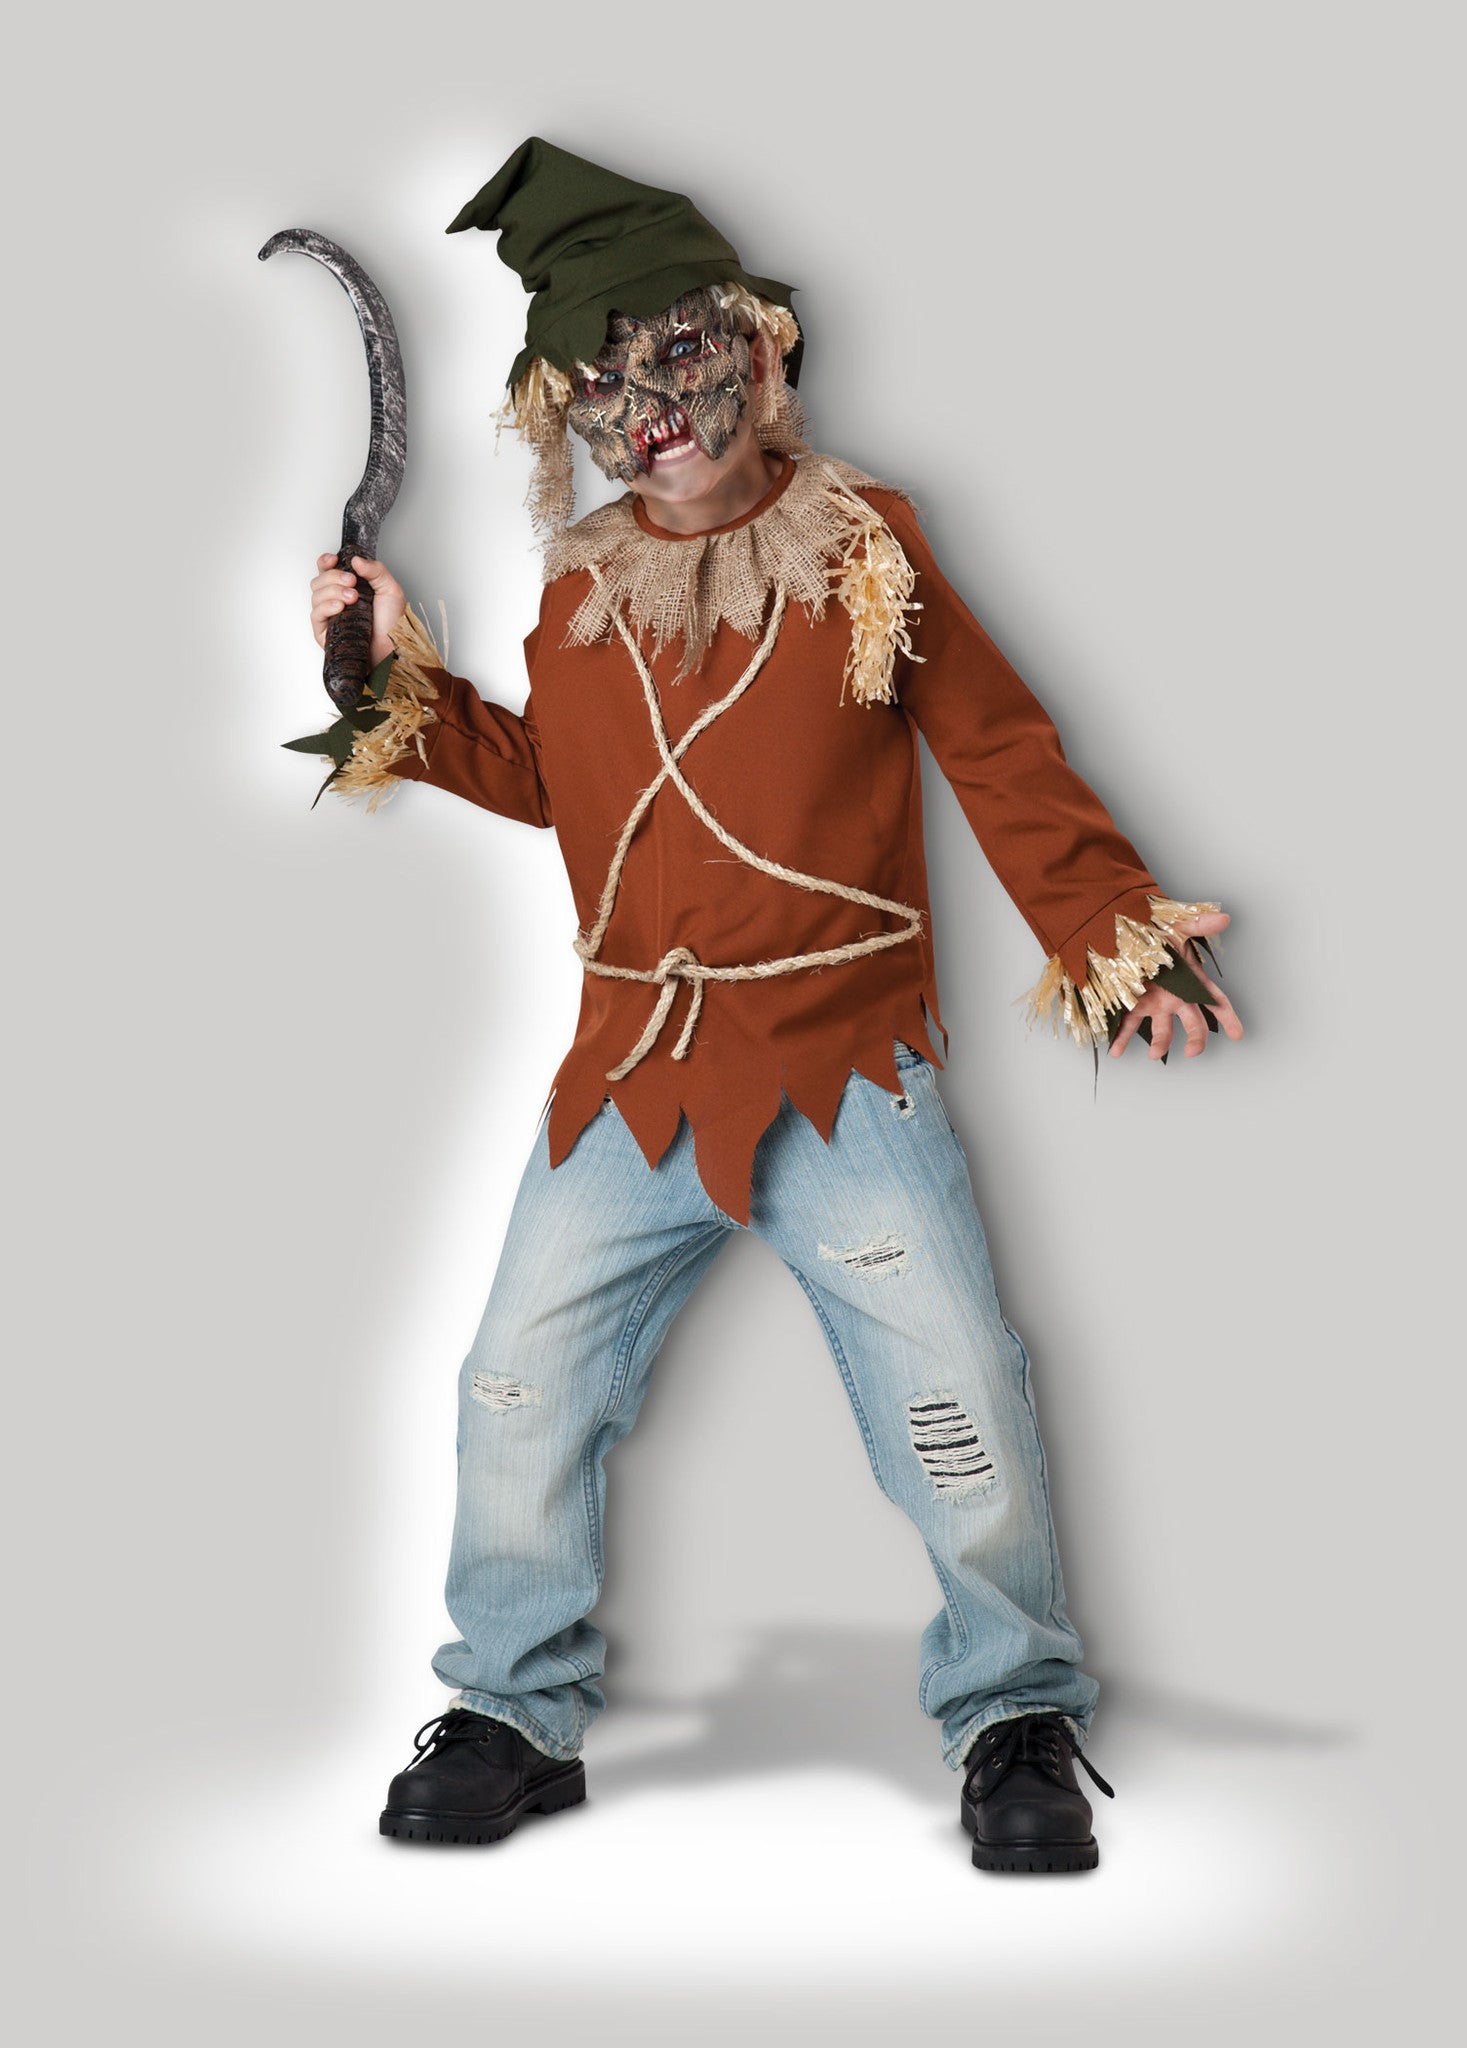 Psycho Scarecrow CB17071 & Child Scary Scarecrow Costume u2013 InCharacter Costumes